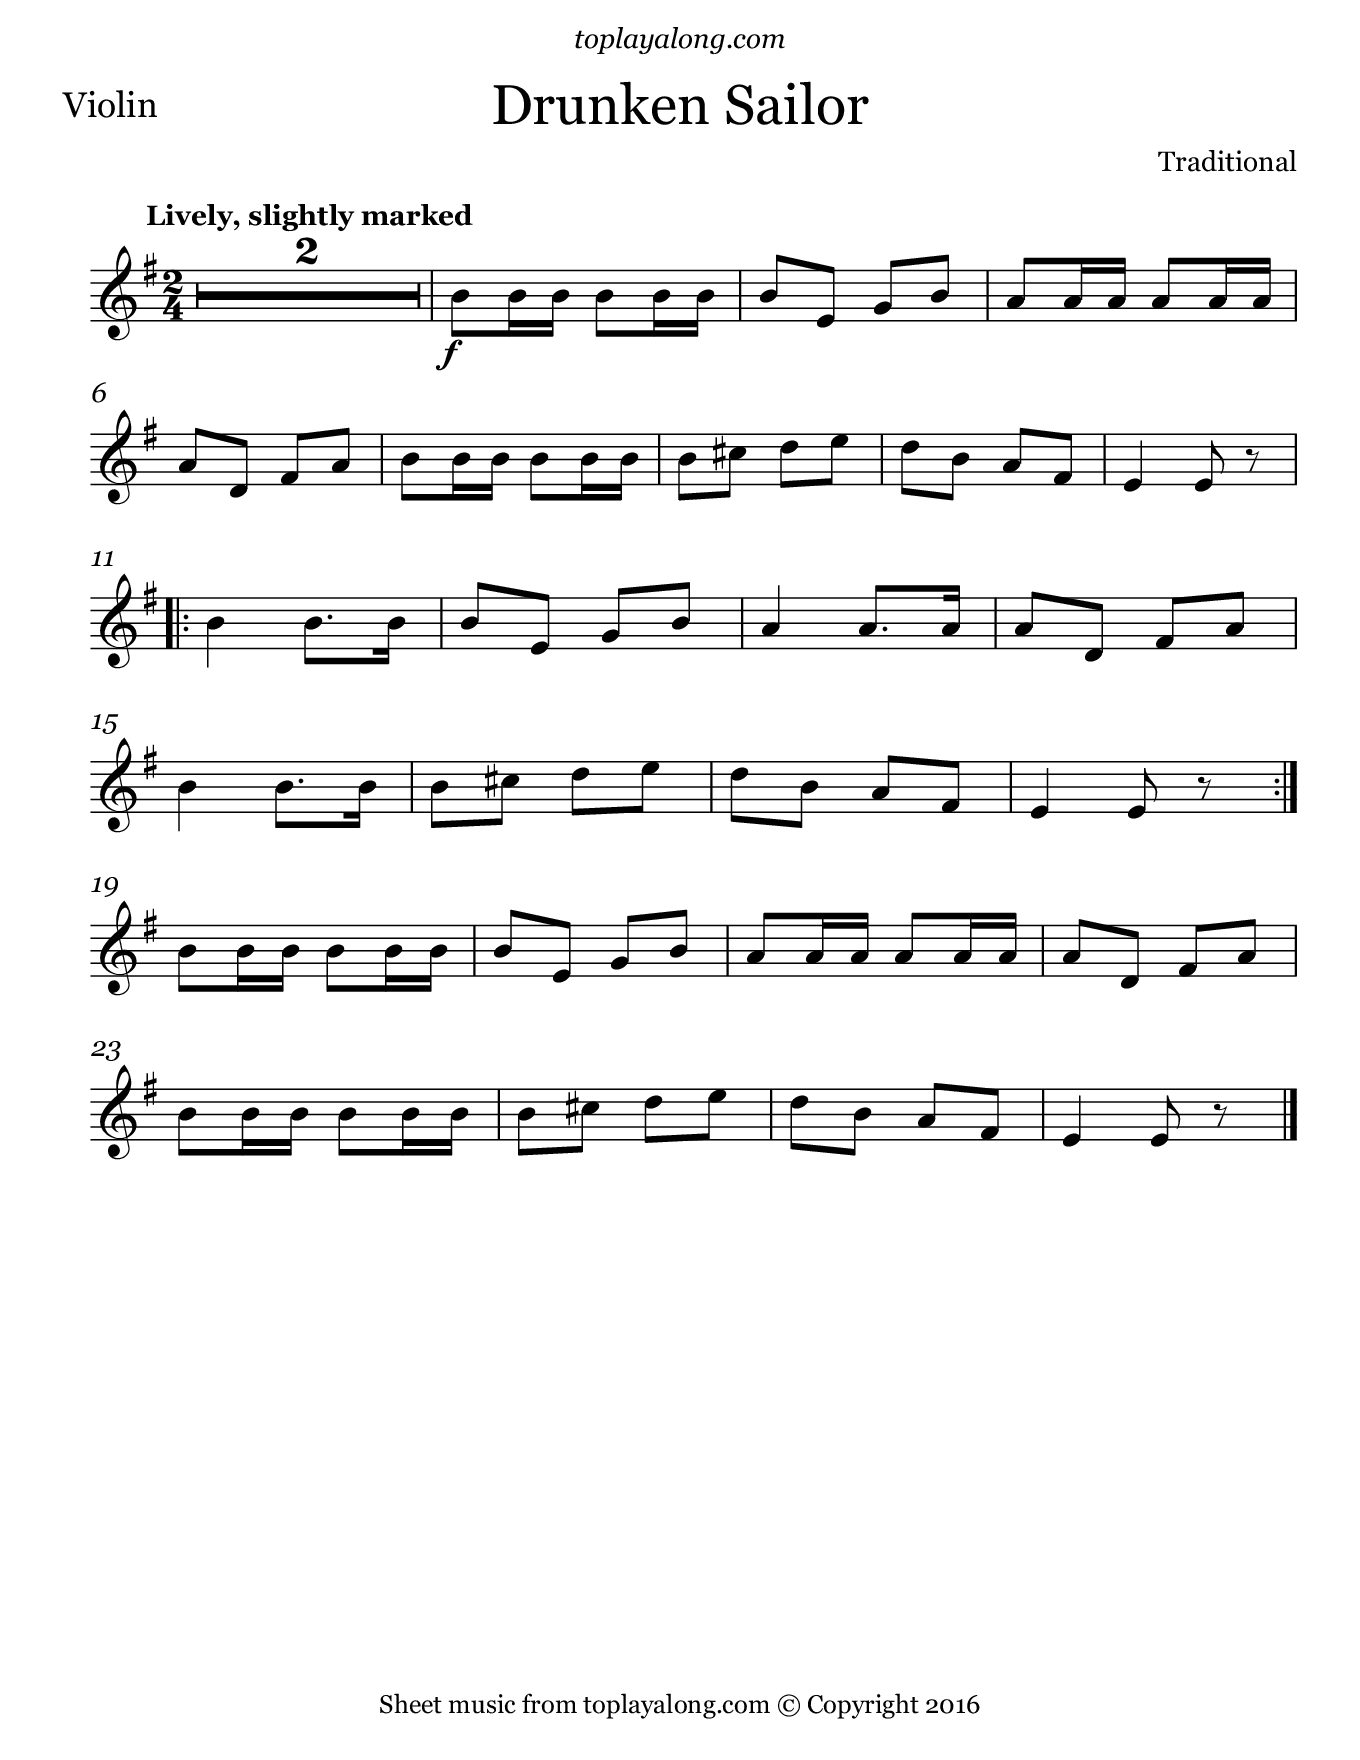 Drunken Sailor Free Sheet Music For Violin Visit